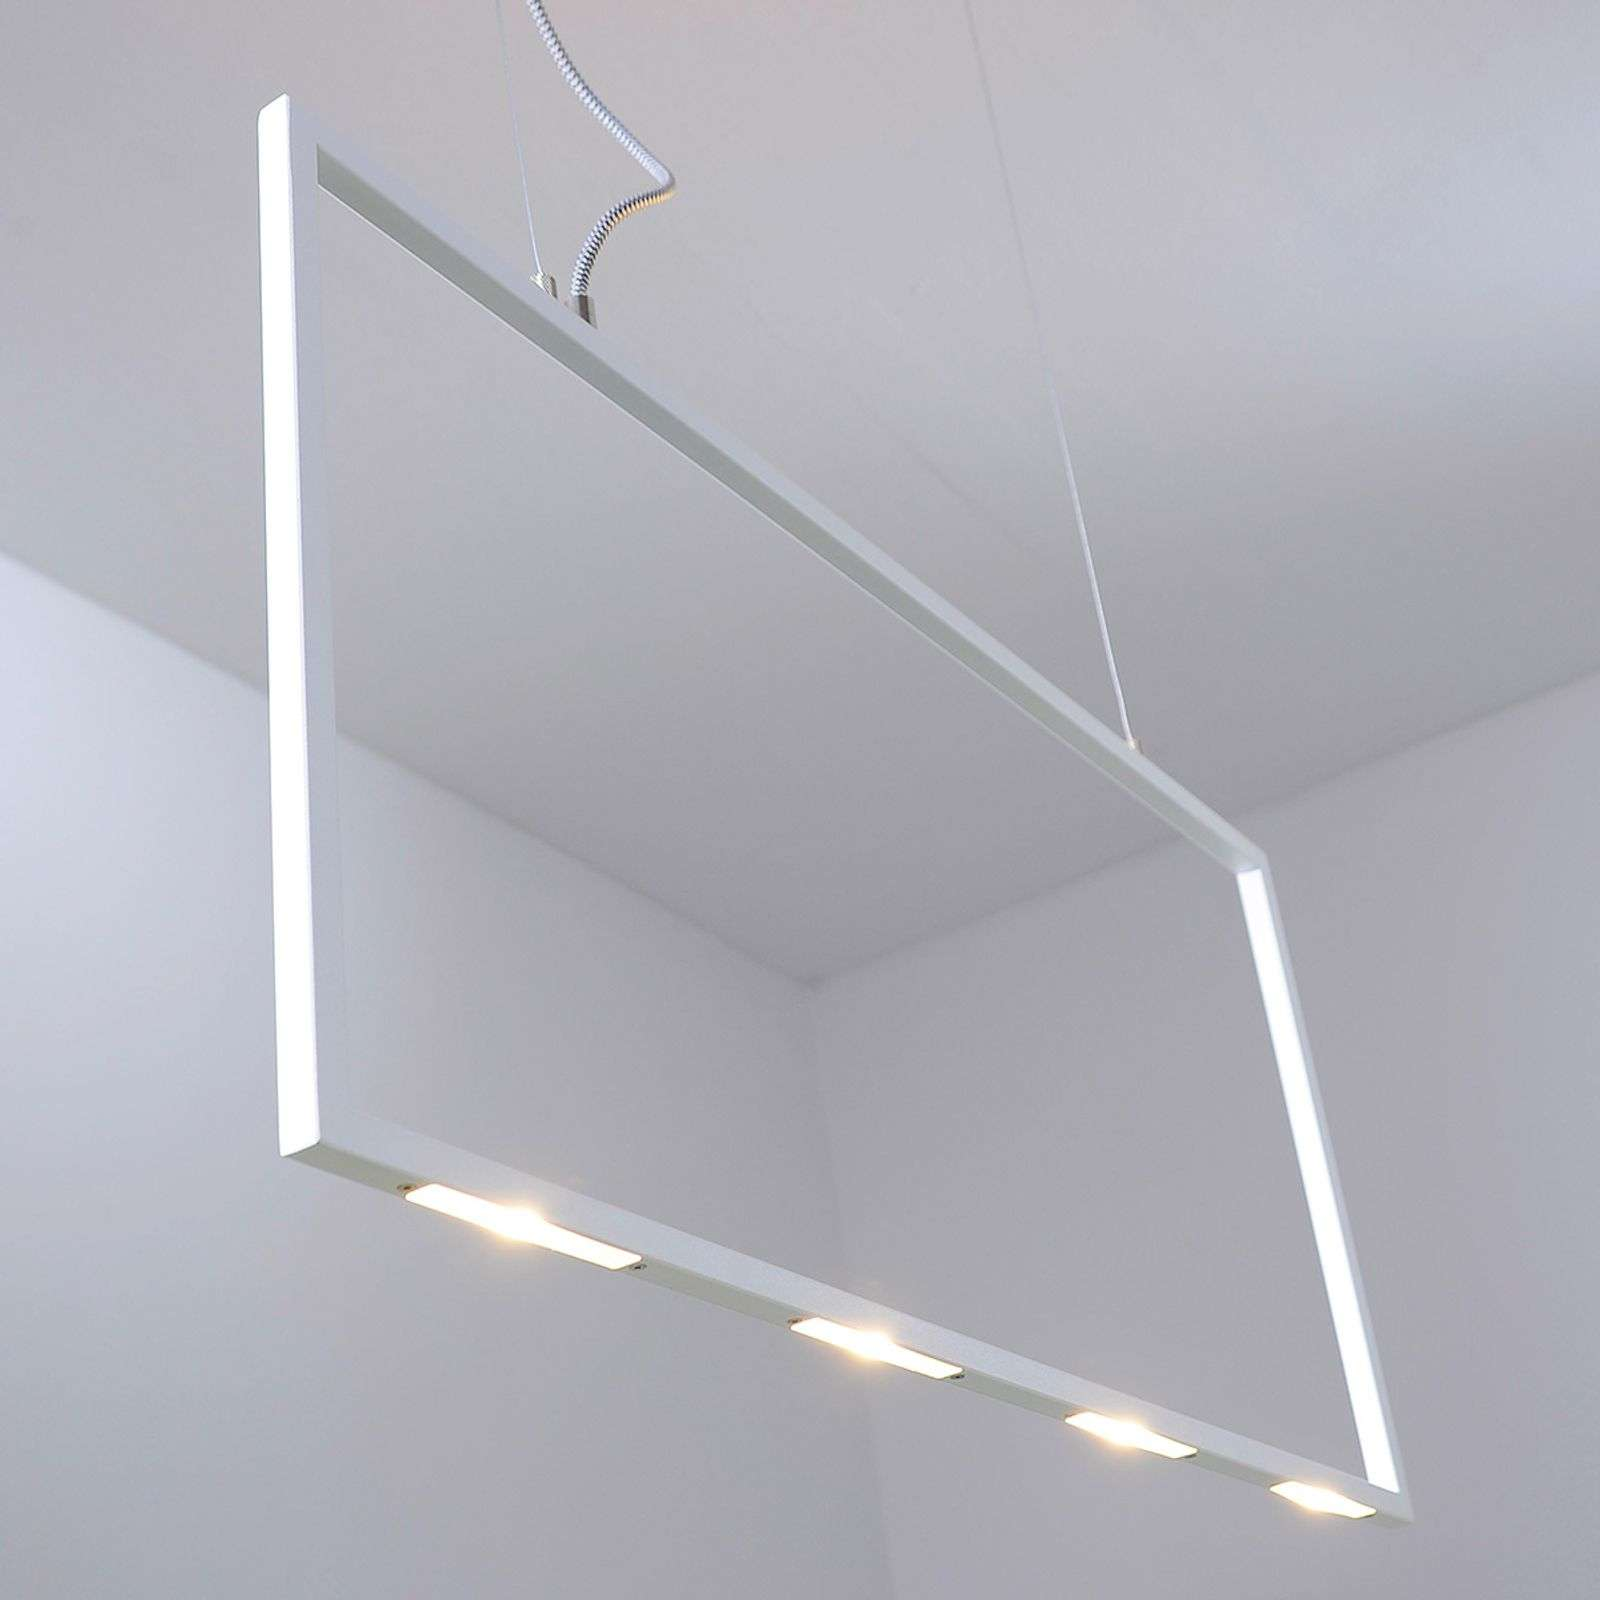 Suspension LED rectangulaire Kona, 80 cm long